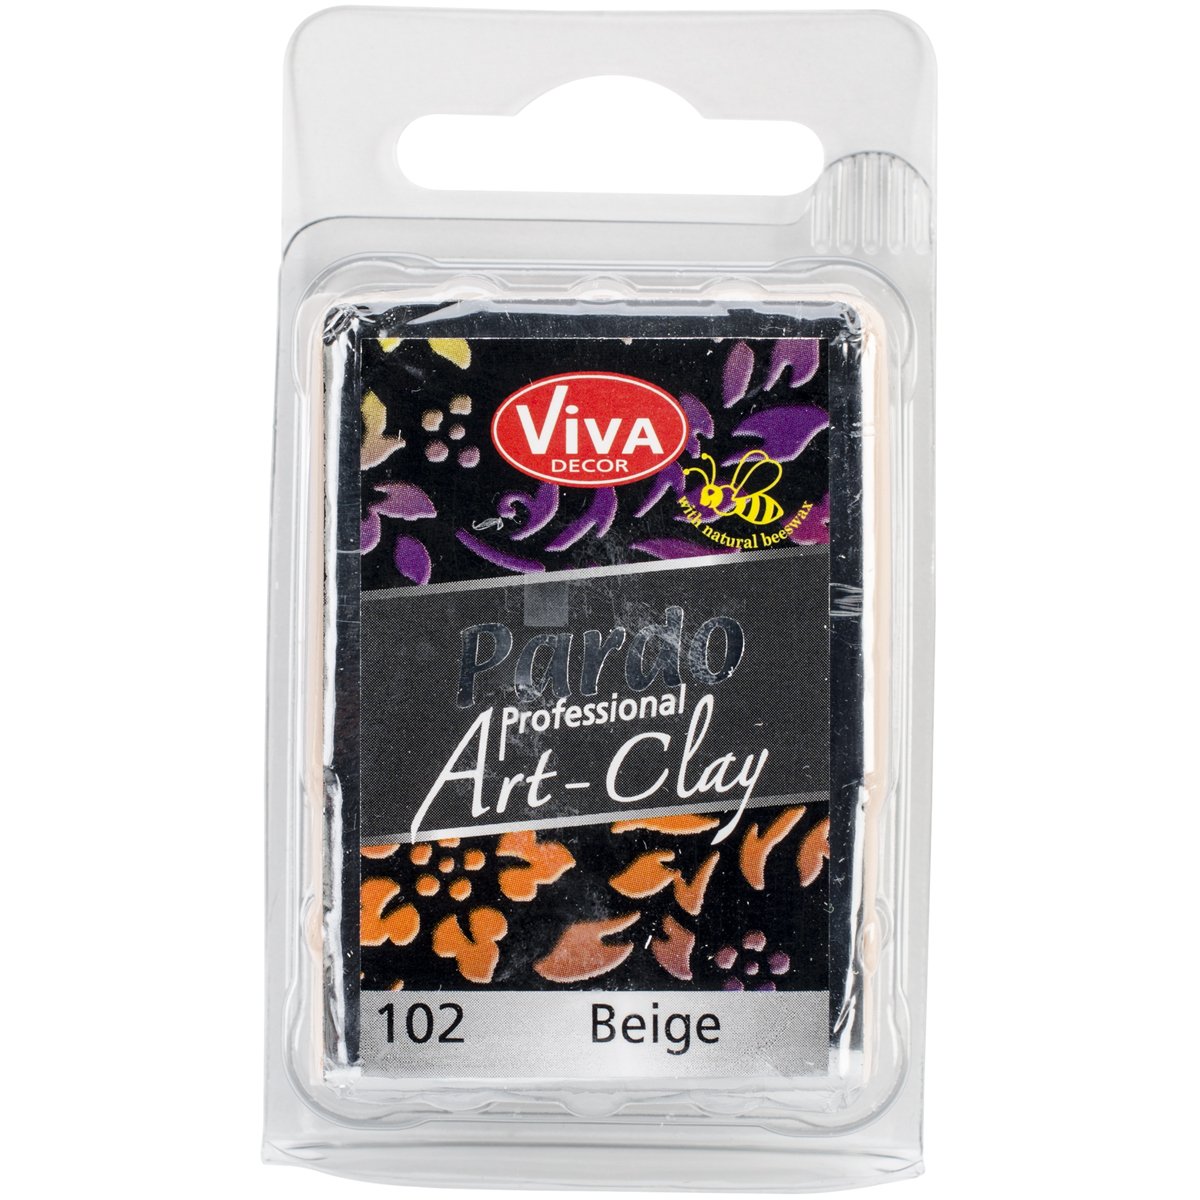 PARDO Art Clay 56g-Beige